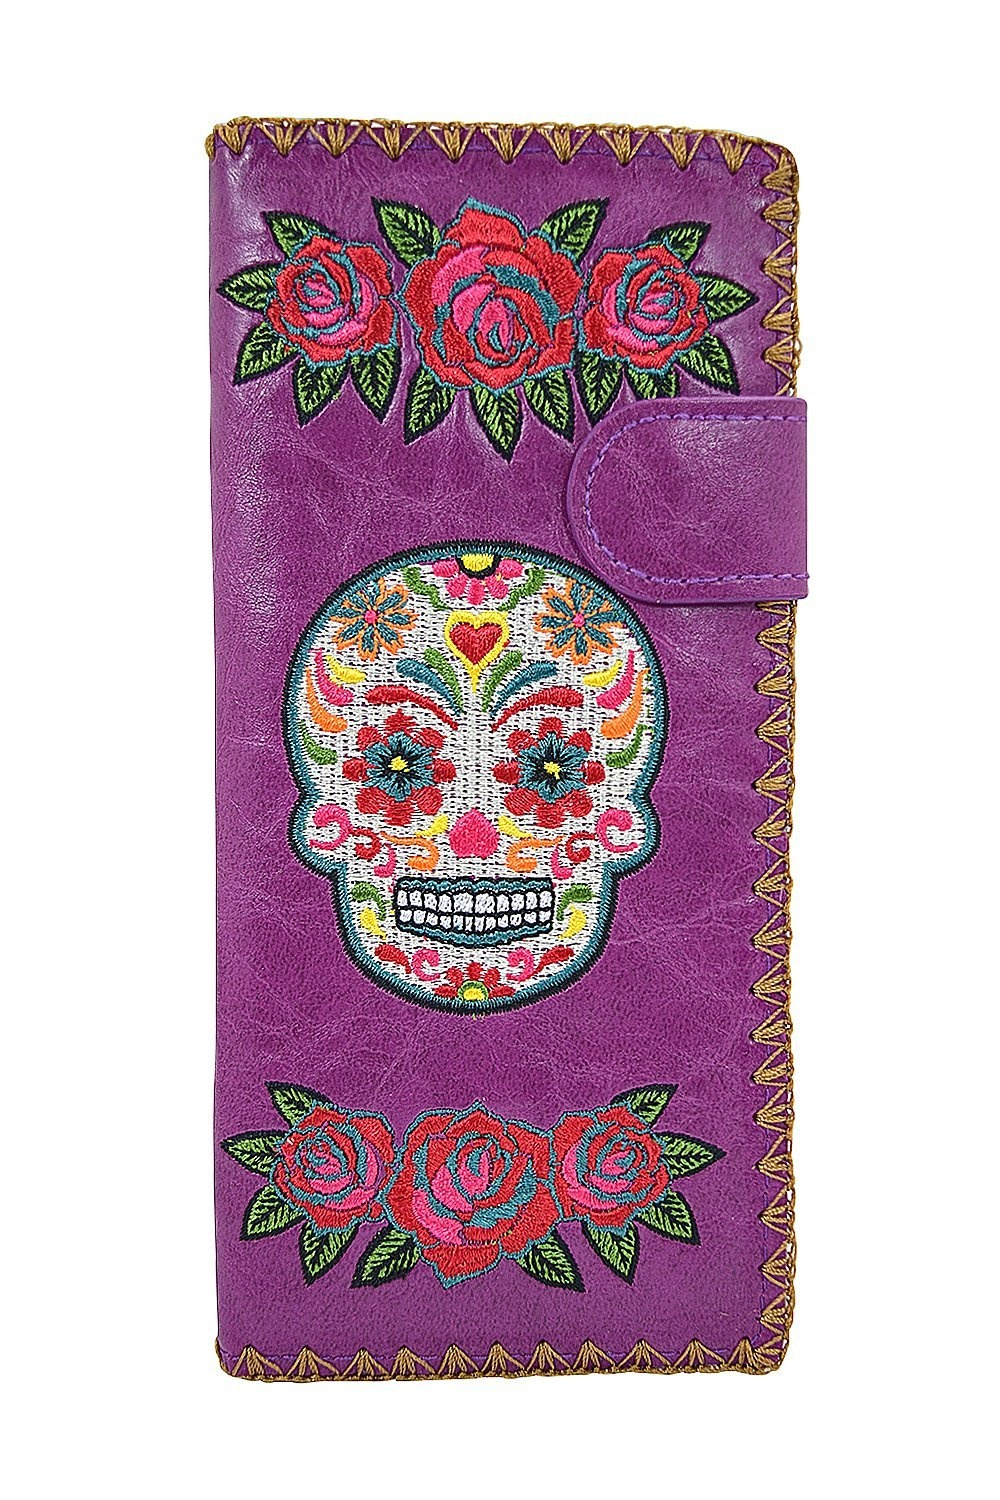 add2000d9ead Lavishy Rockabilly Rose & Sugar Skull Day of the Dead Embroidered Large  Wallet